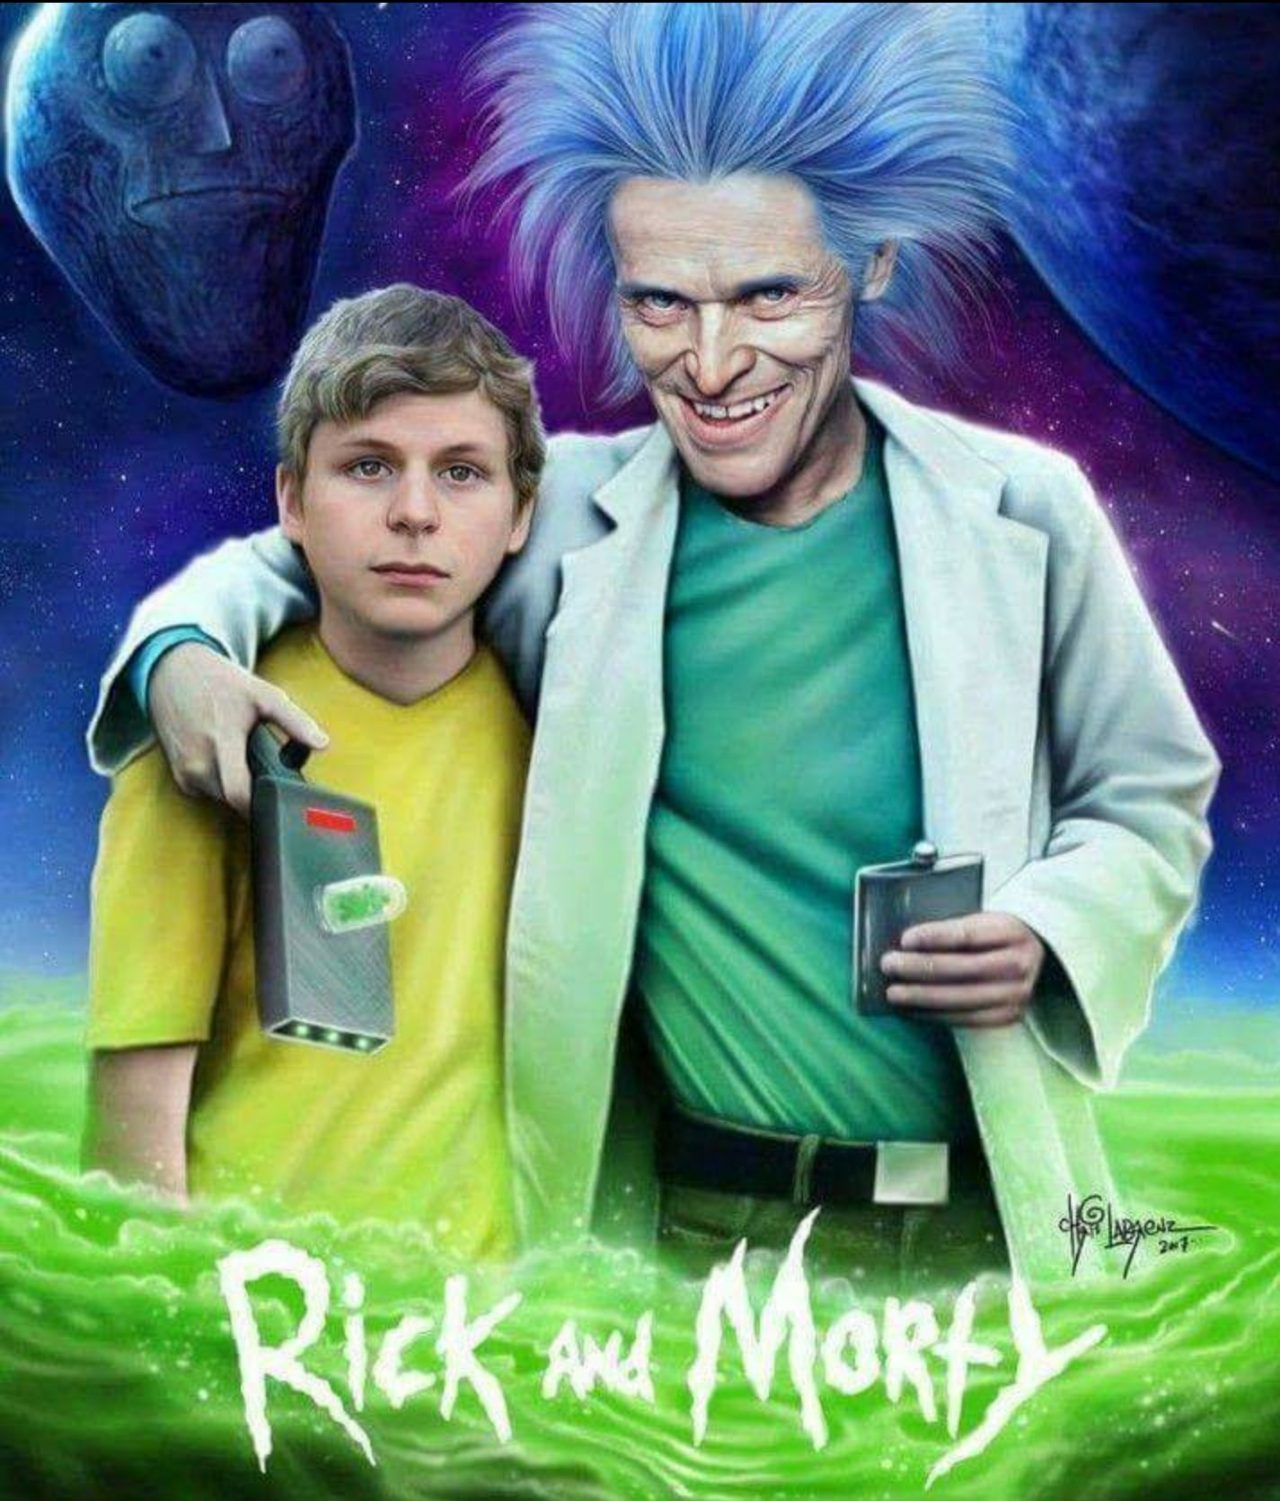 Hollywood intentando no hacer una película de Rick y Morty...